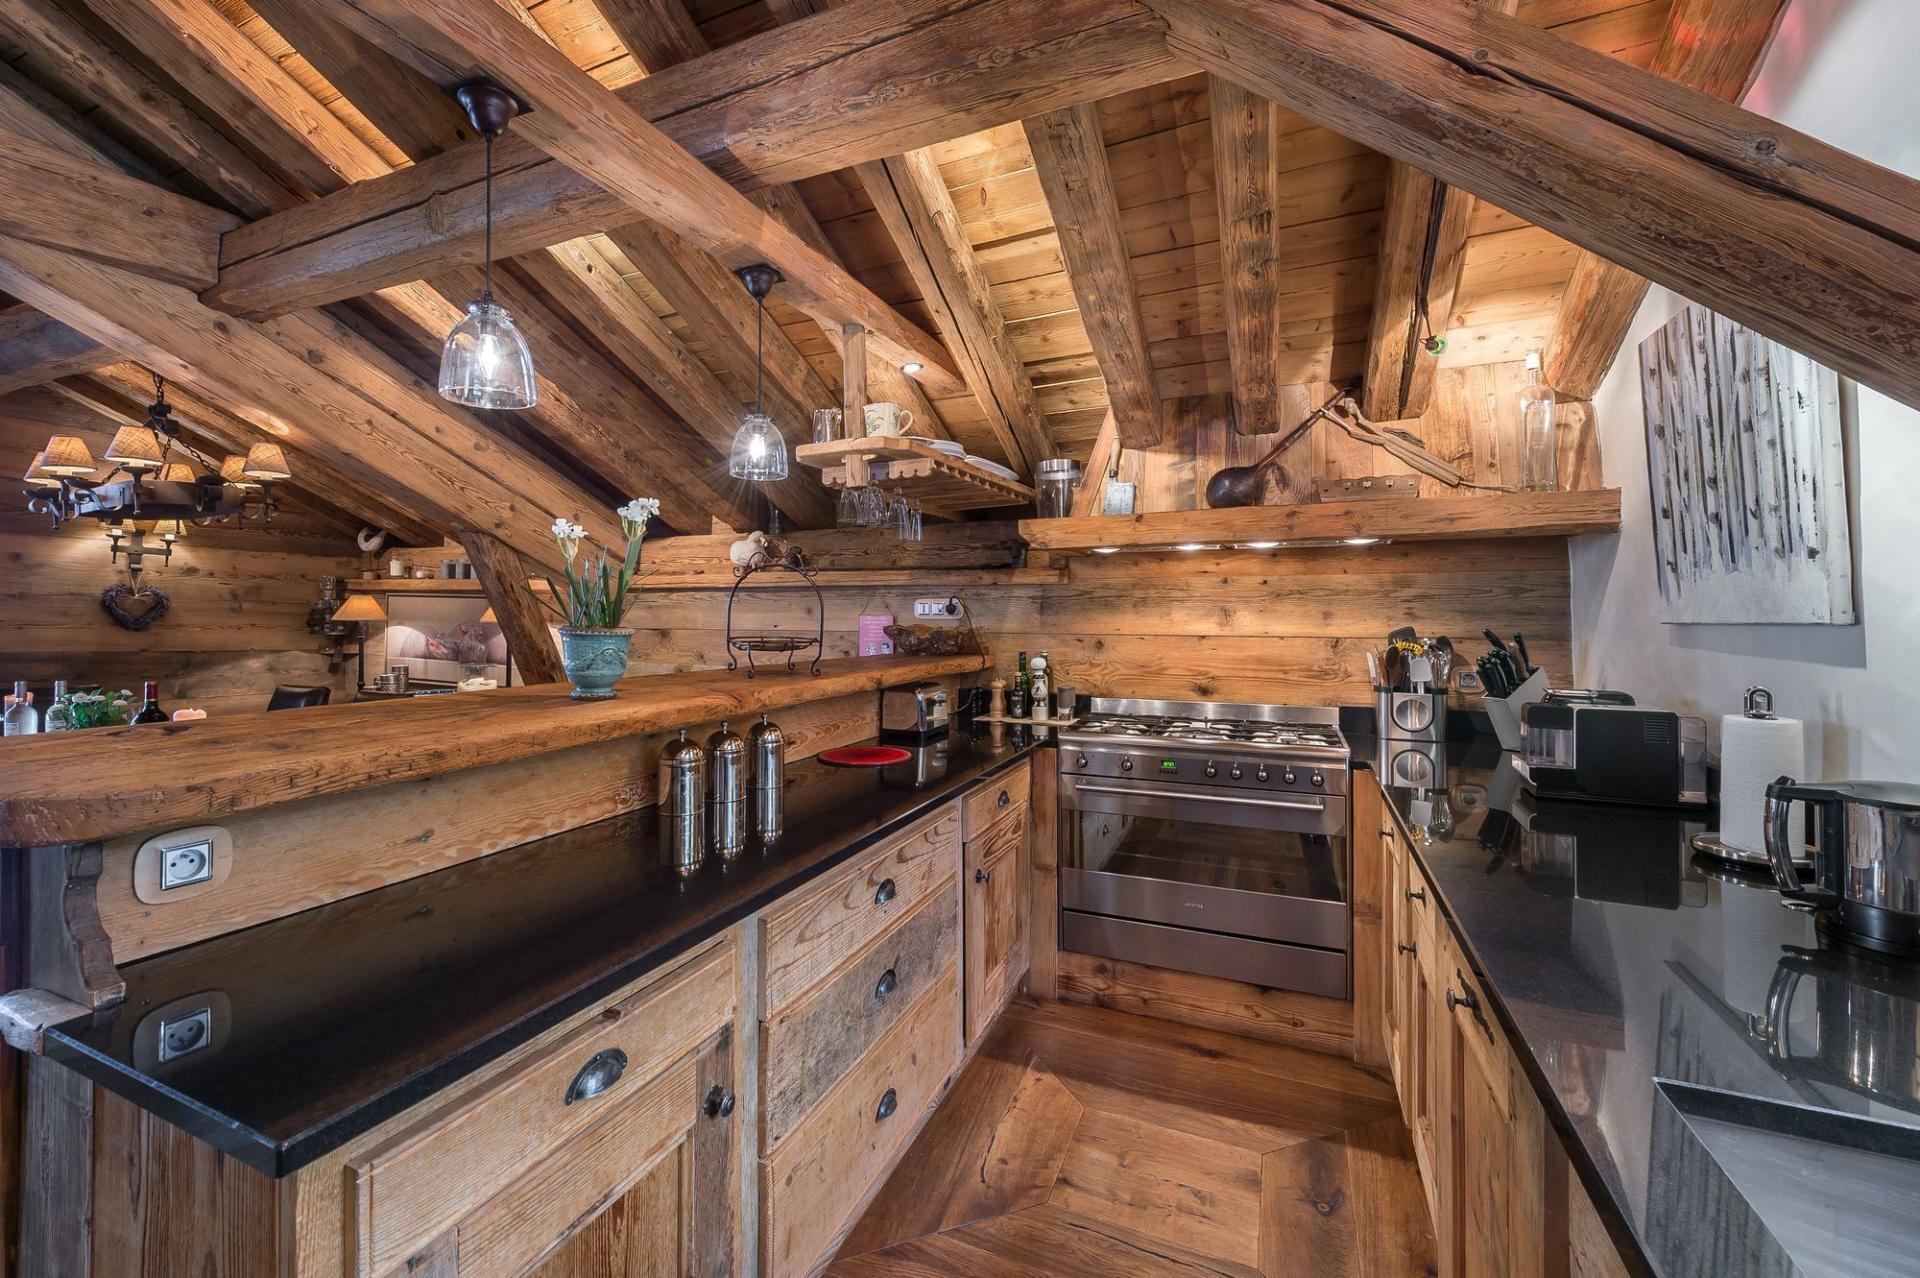 CHALET BELLECOTE AND ITS OPENED-PLAN  KITCHEN